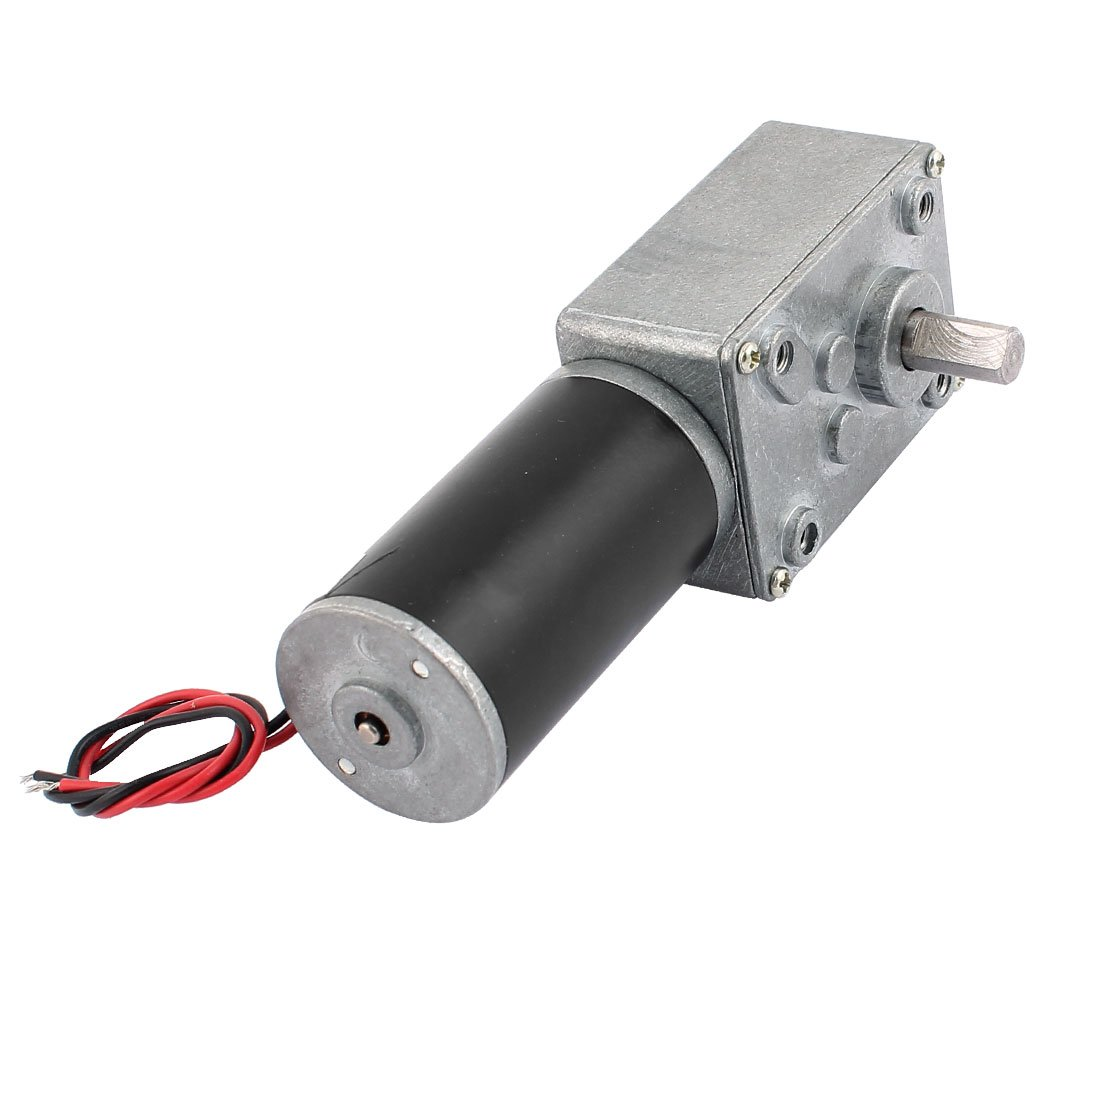 uxcell DC 12V 15RPM 8mmx14mm D-Shape Shaft Electric Power Turbo Worm Geared Motor